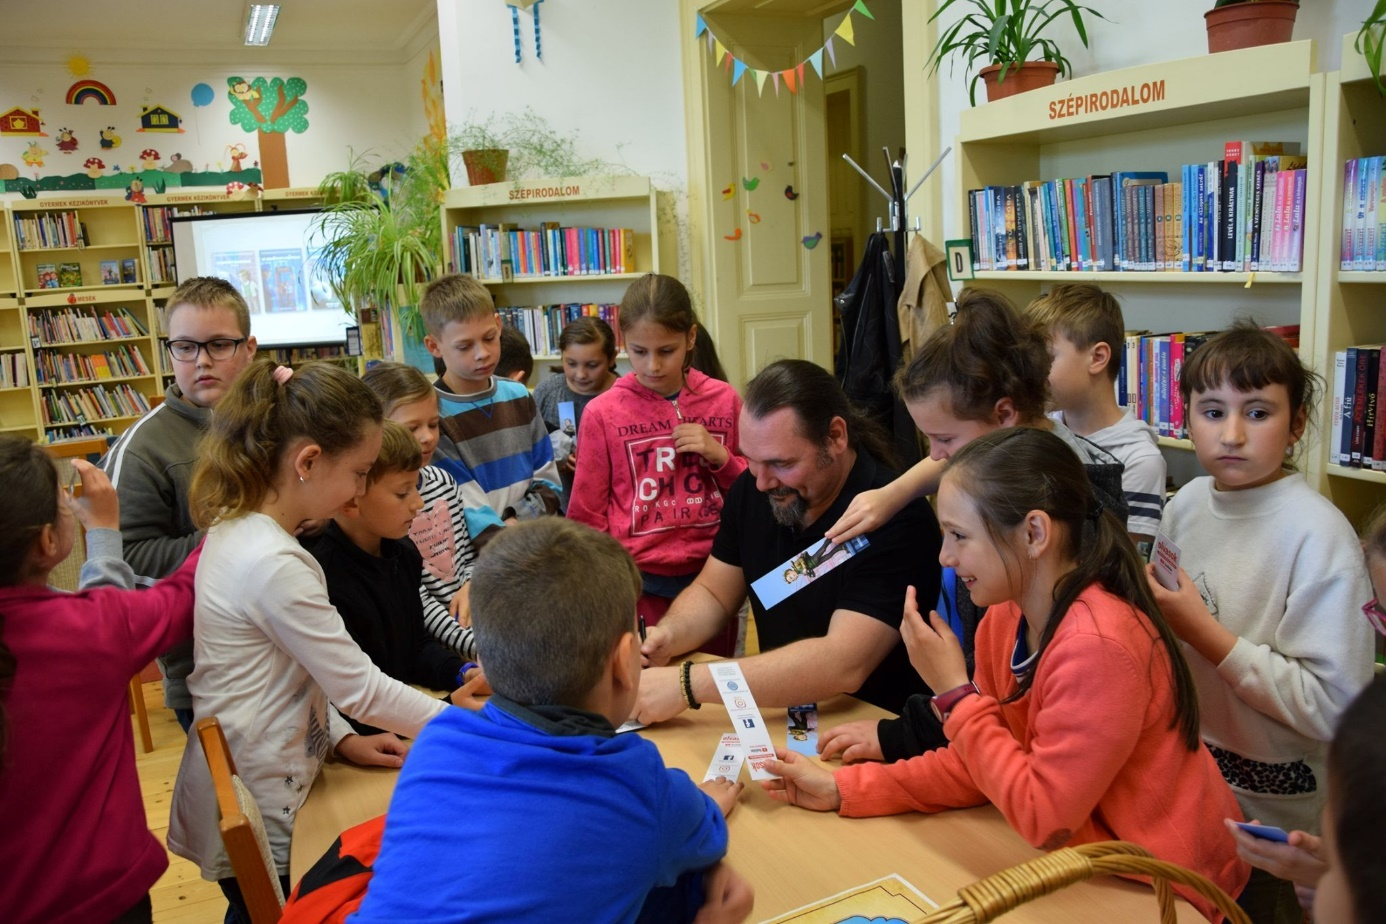 Reader-meets-writer event in the Town library